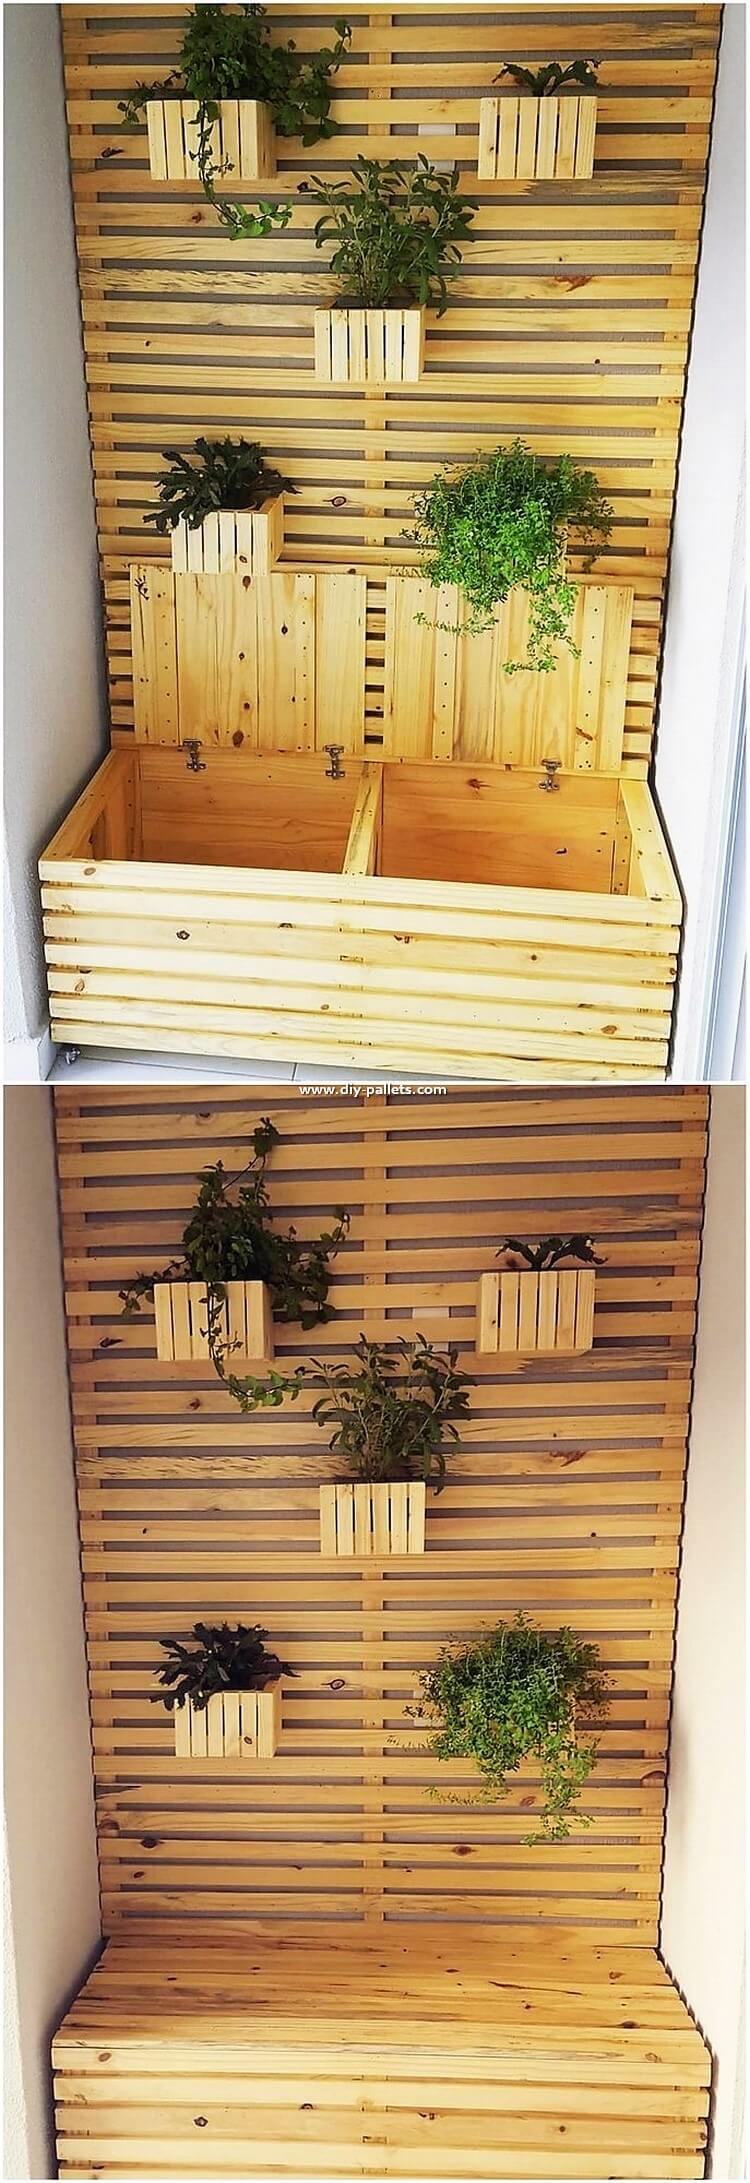 Pallet Planter with Storage Box